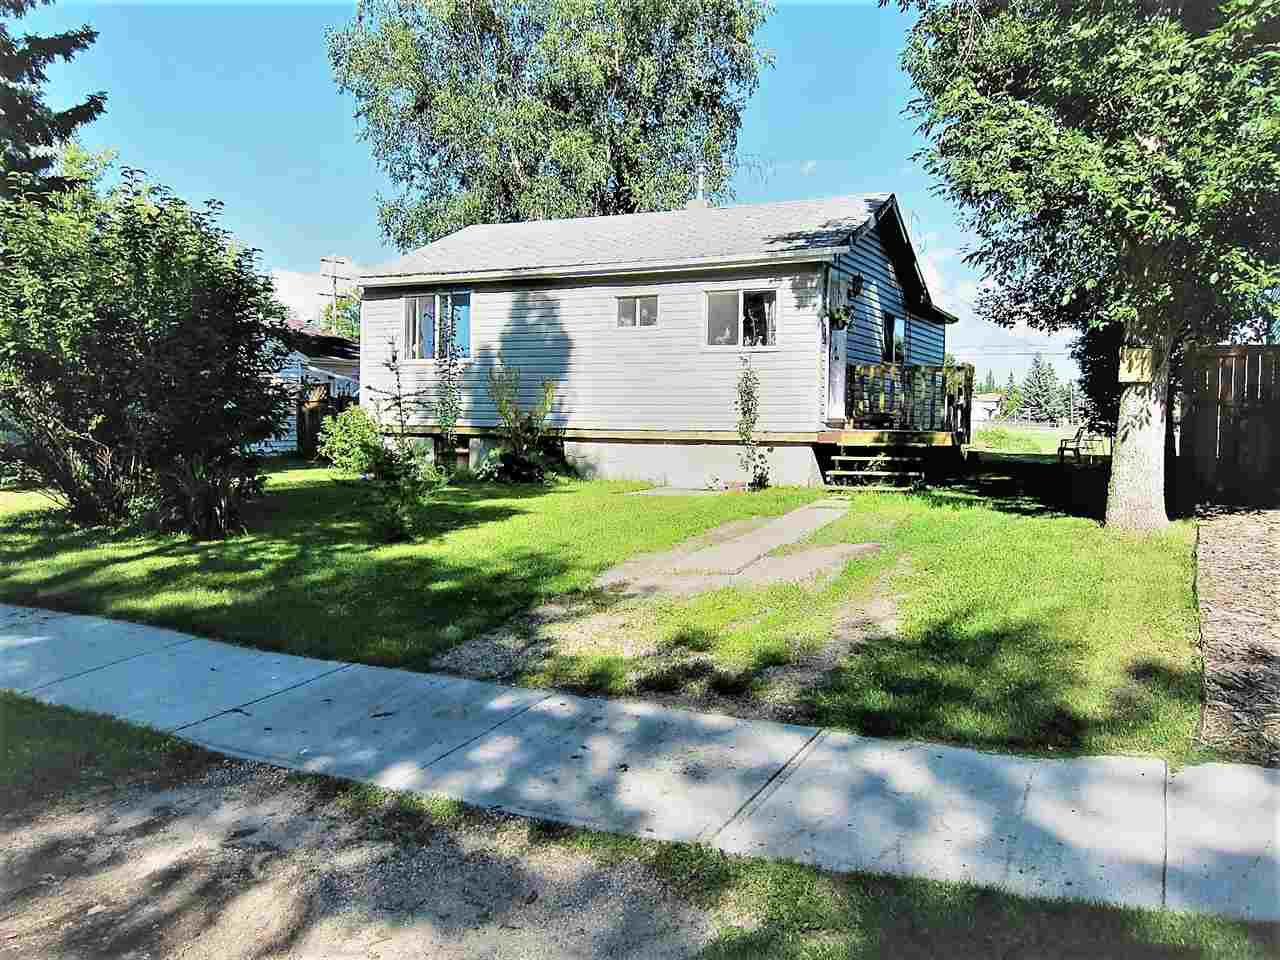 This nicely upgraded home is located on a quiet street close to schools, shopping and all amenities. Substantially renovated approx 4 yrs ago the upgrades include: new kitchen cabinets, countertops, windows, electrical, plumbing, doors and more. It has 2 bedrooms up and 1 in the basement. Other past upgrades are the furnace and shingles. The property backs onto a school playground and the lot is 55 ft x 140 ft which gives you all the space you need. There yard is fenced and there is a good size storage shed in the back. There is also back alley access. Great starter or investment home.